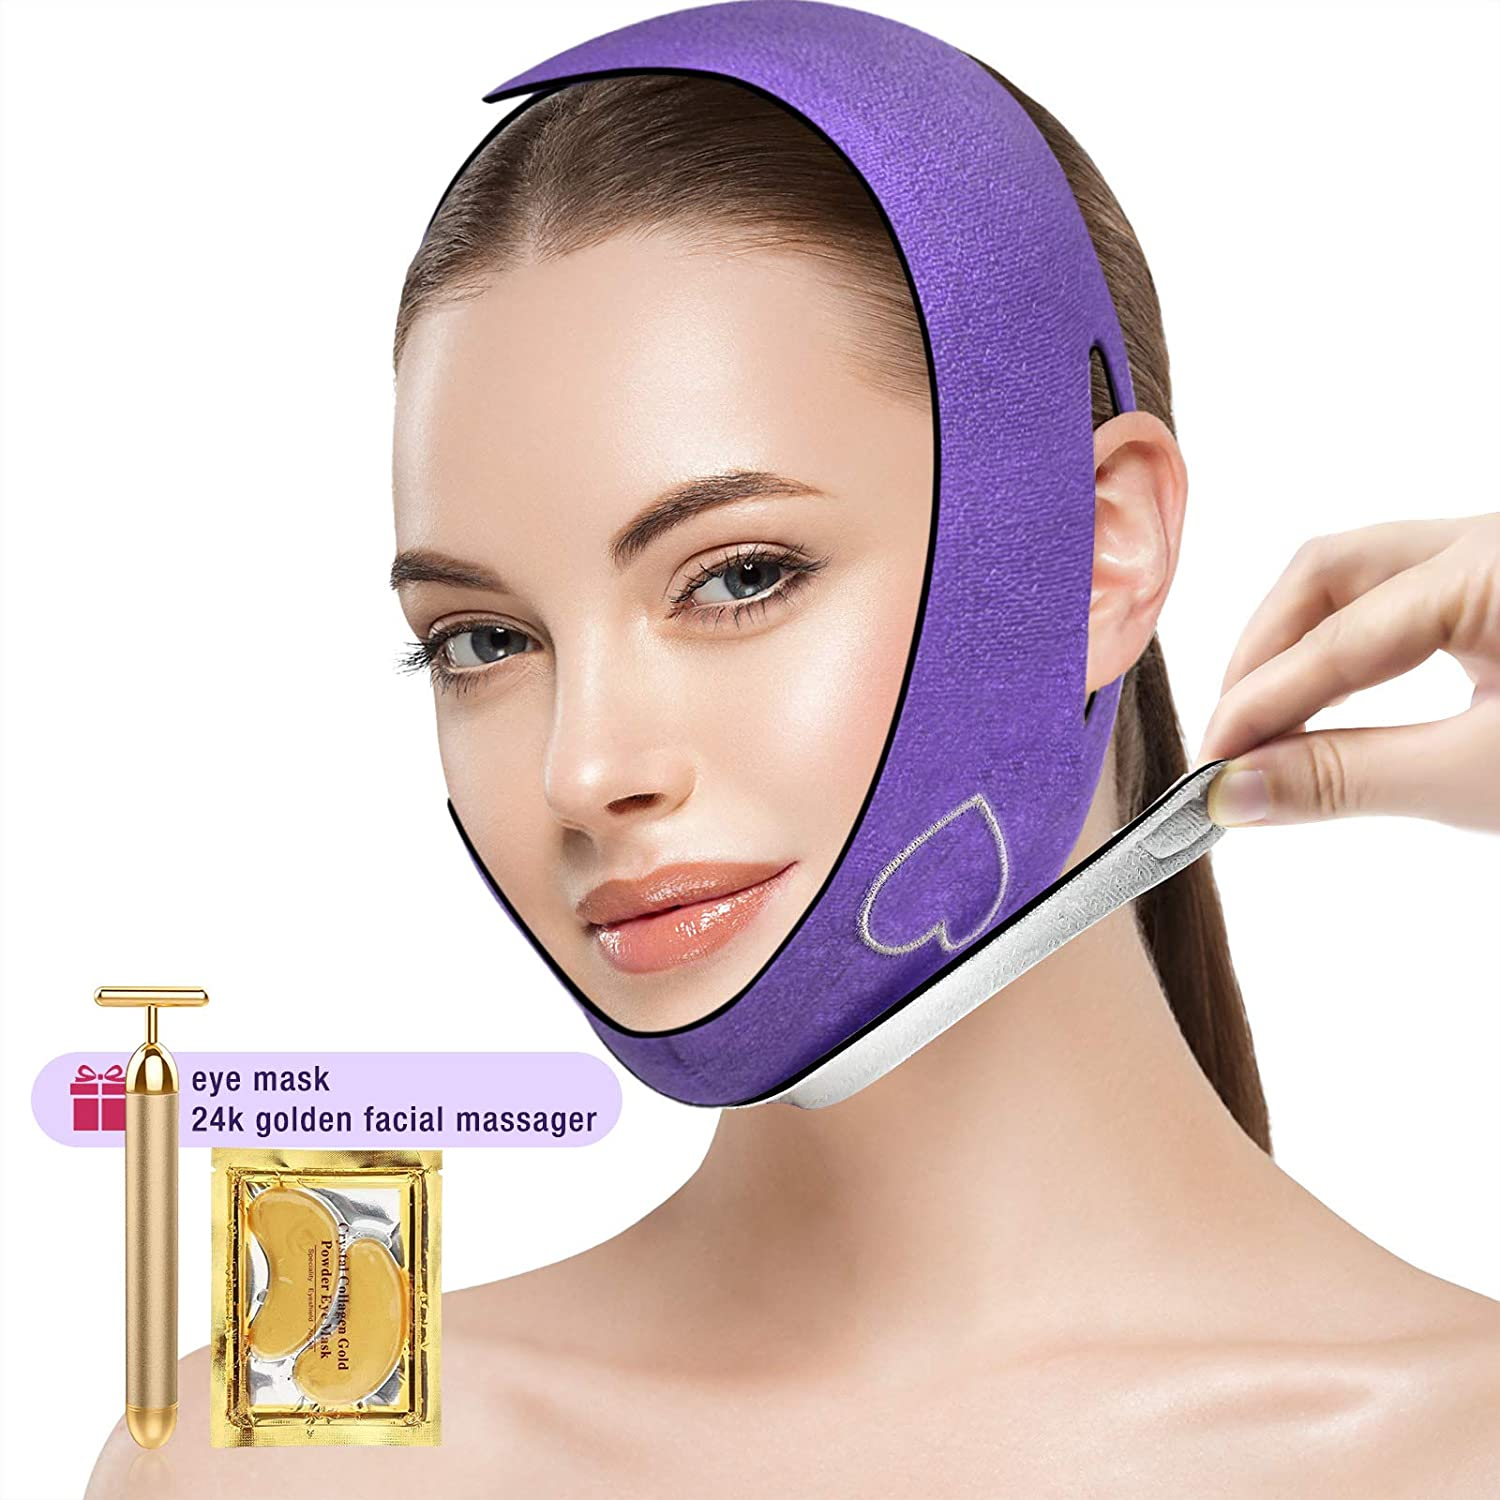 Face Slimming Strap Double Chin Reducer Free Reusable lin 5 popular Pain V Popular shop is the lowest price challenge